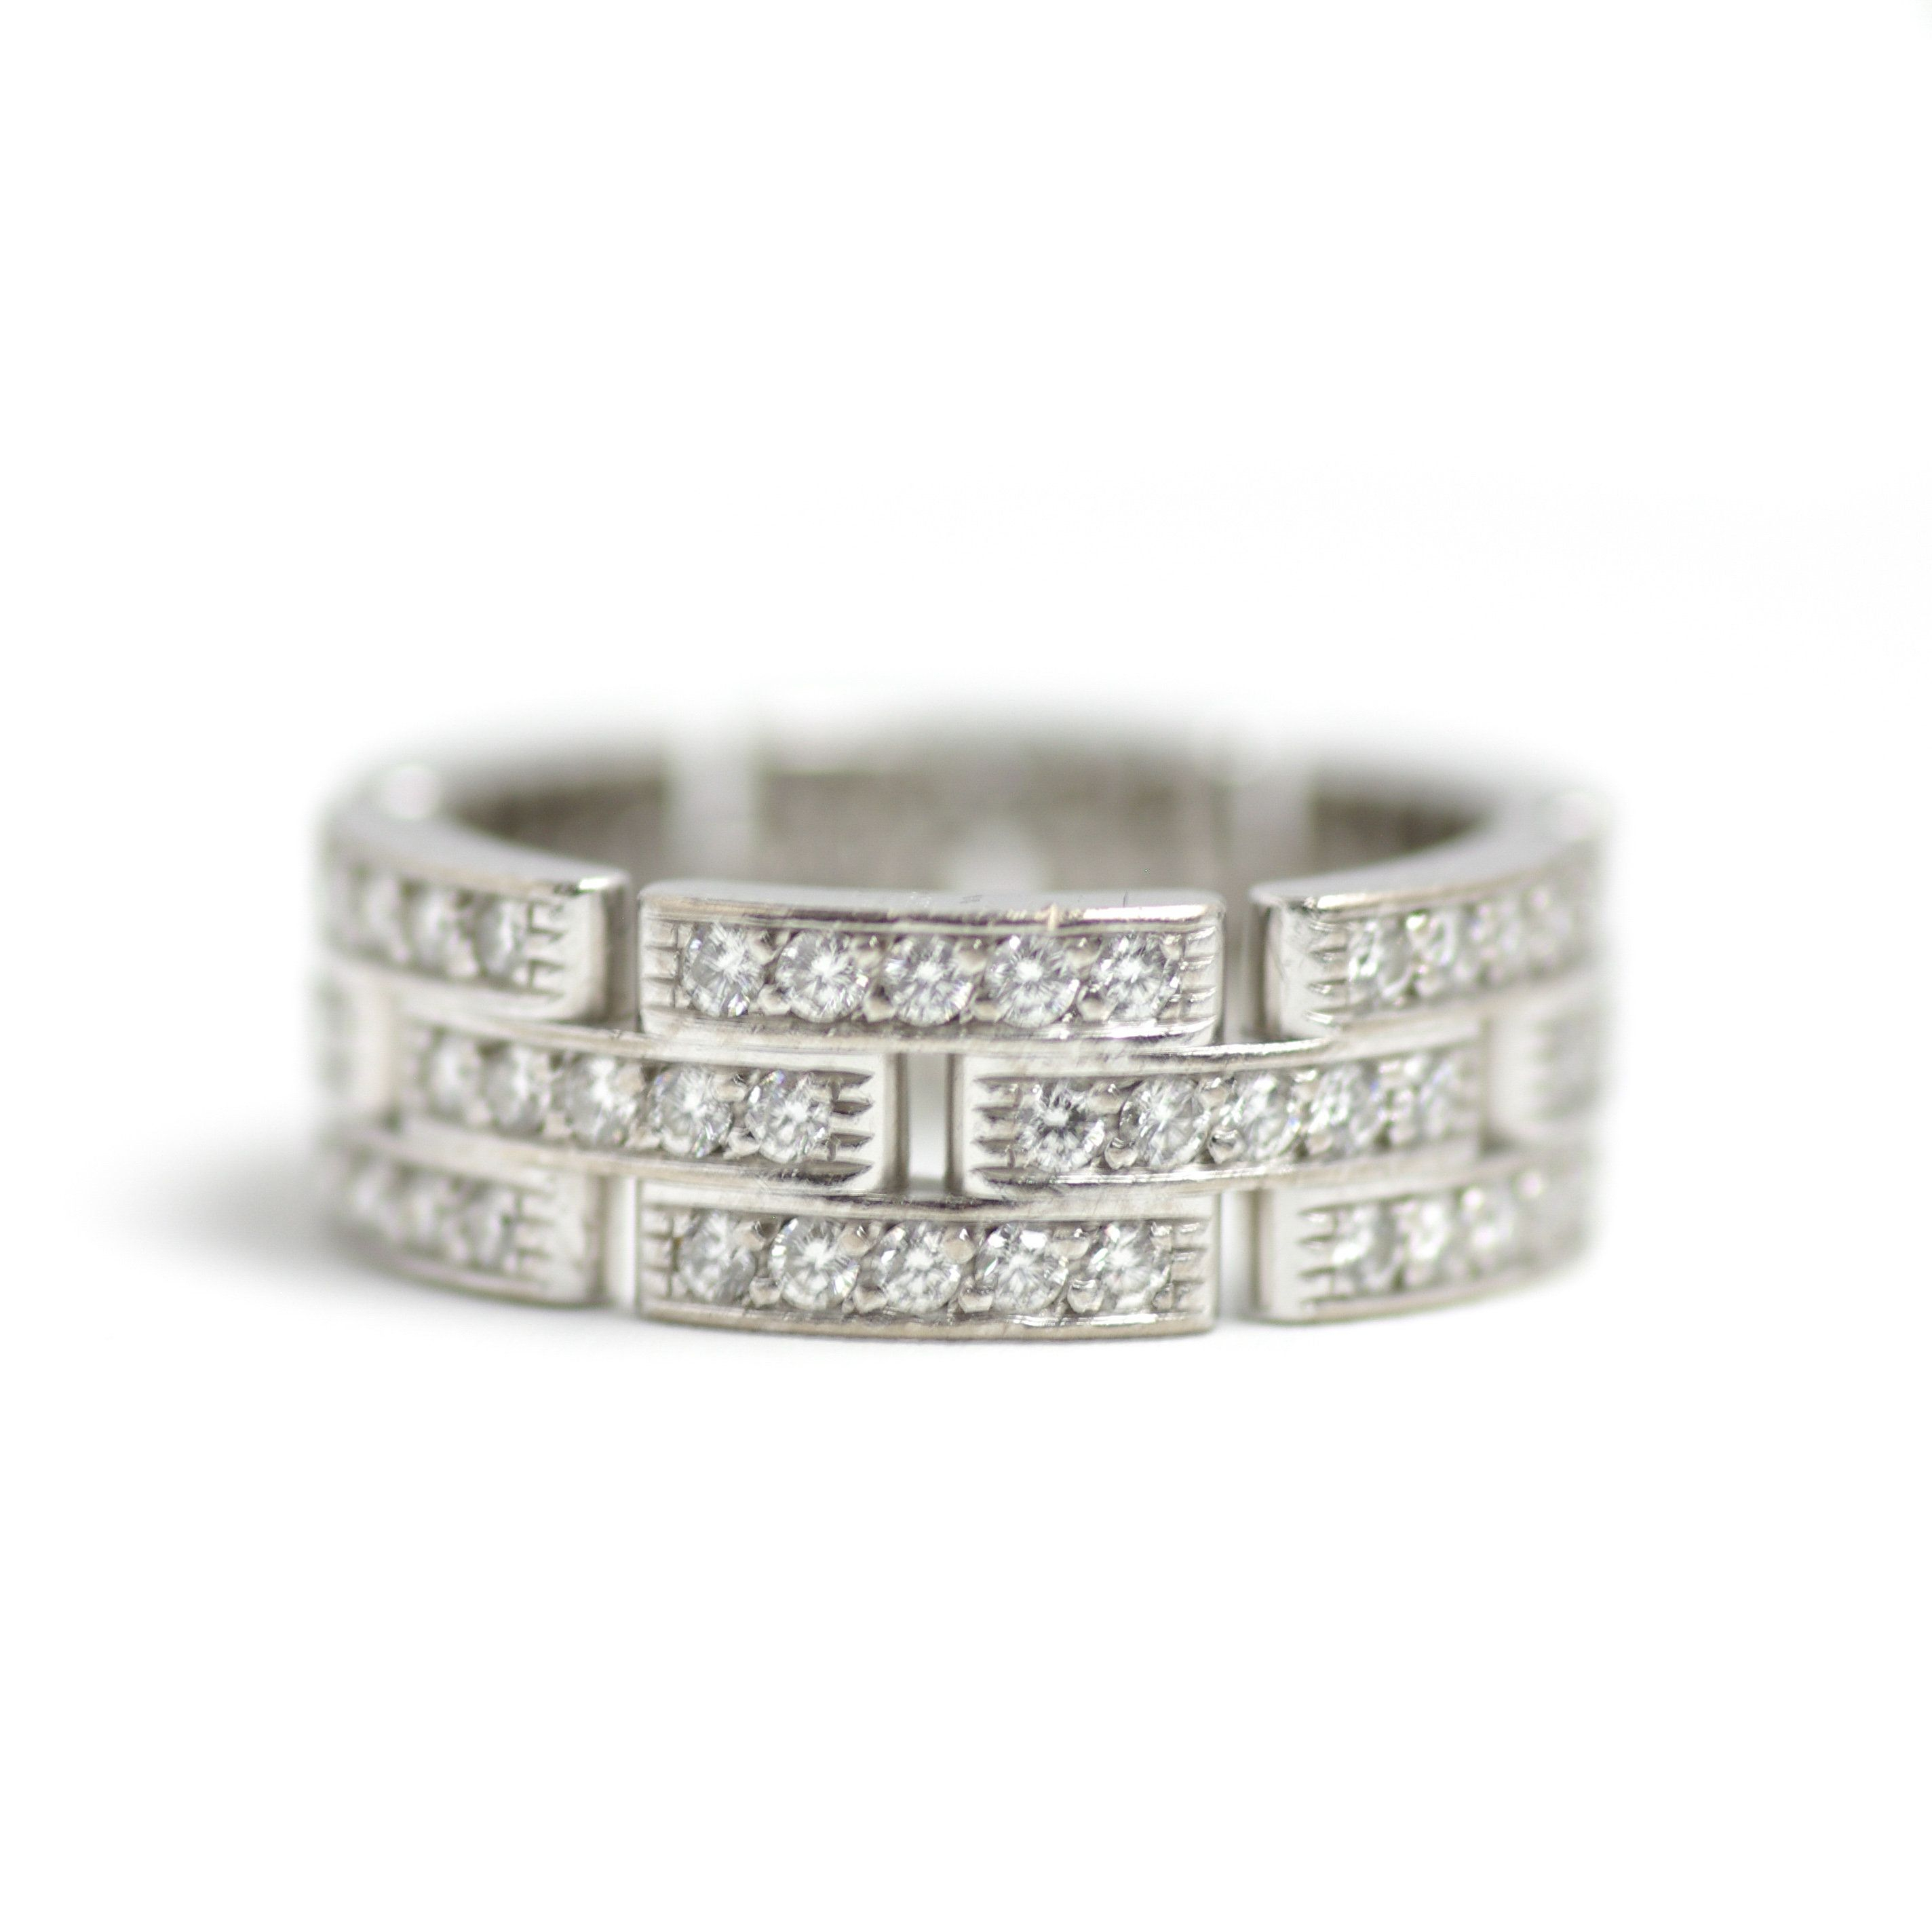 Vintage Style Cartier Maillon Panthere Three Row Pave Regarding Recent Diamond Vintage Style Three Row Anniversary Bands In White Gold (View 11 of 25)